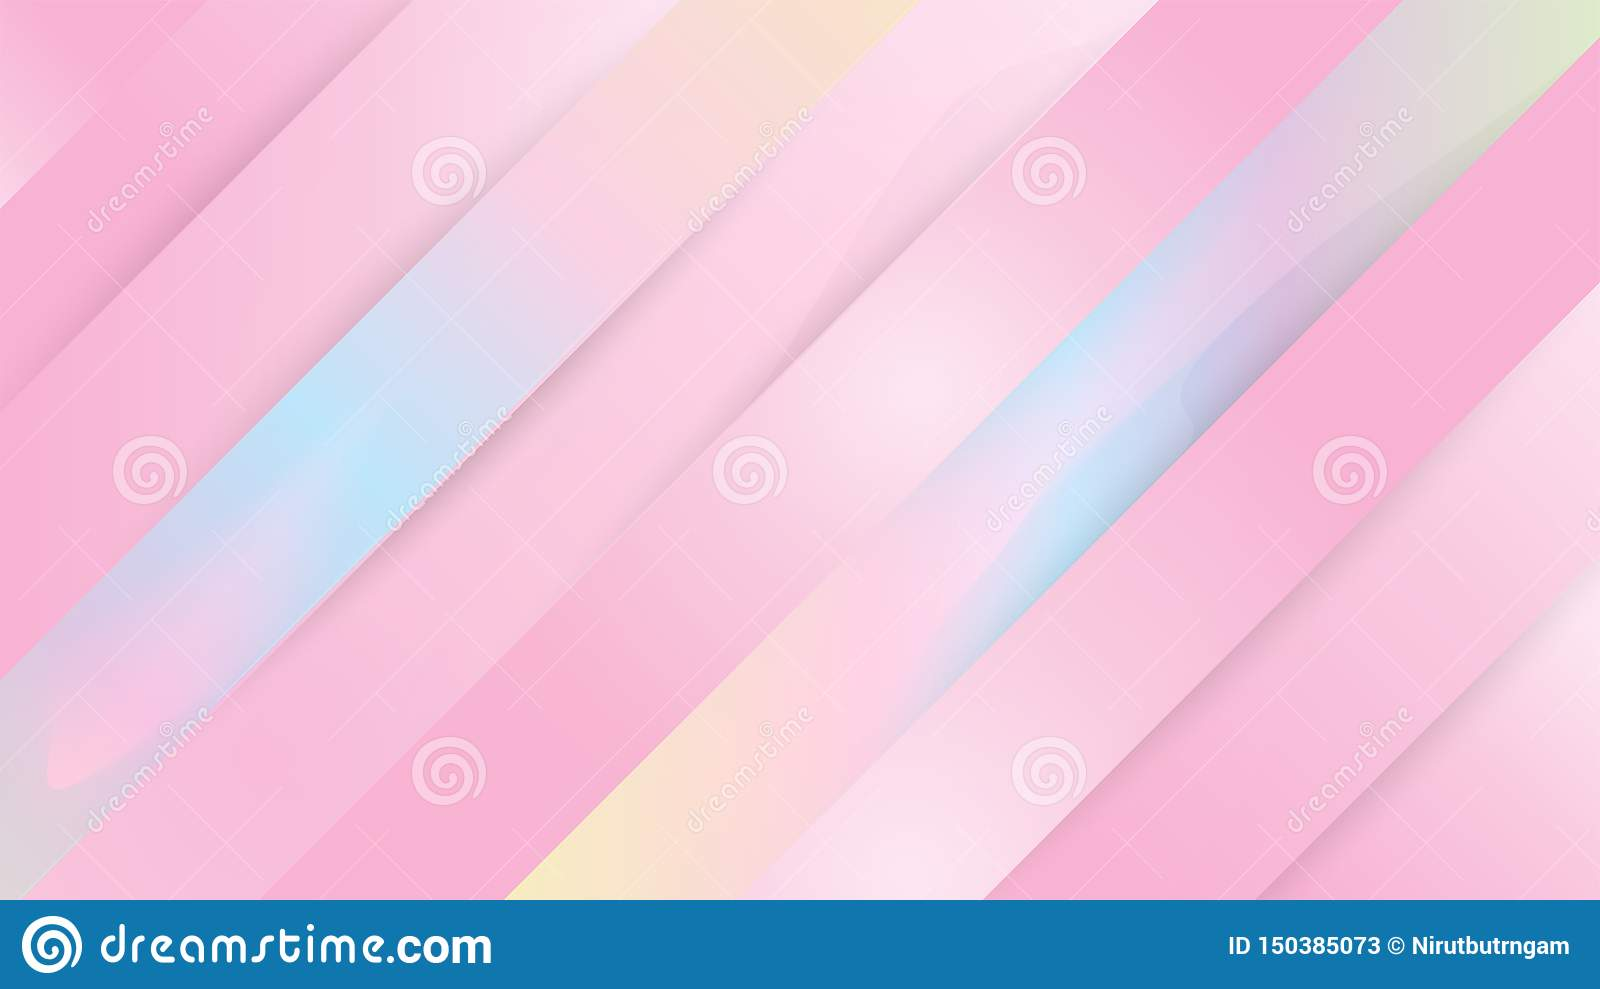 Minimal geometric background with gradient colors.